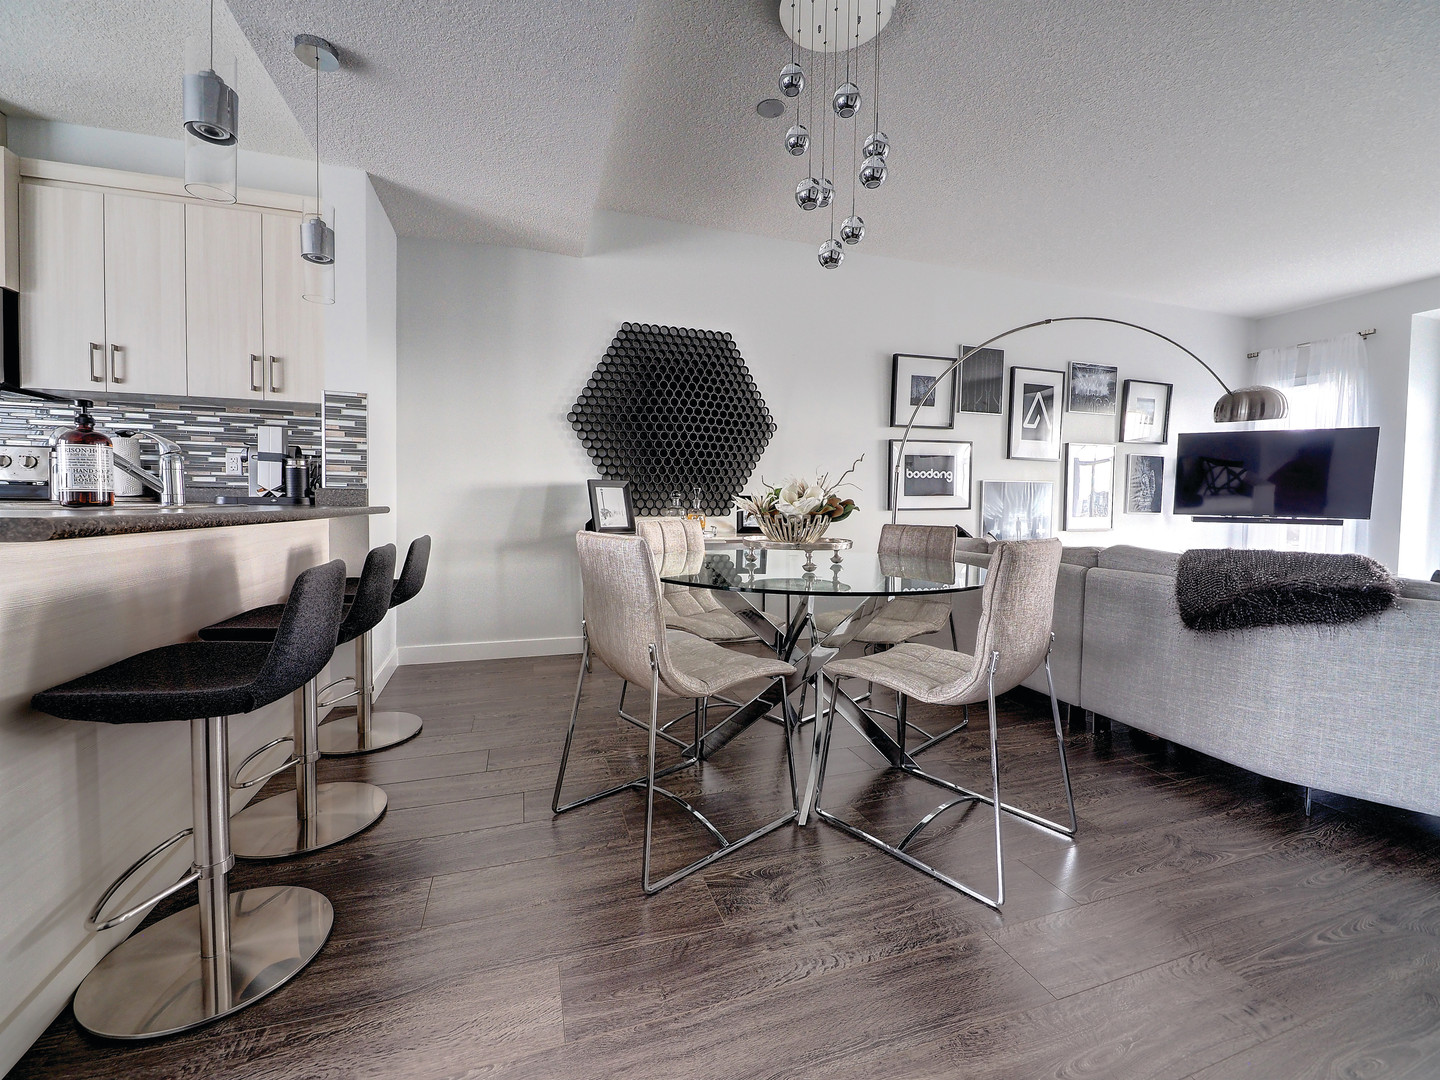 Kithen & Dining Room